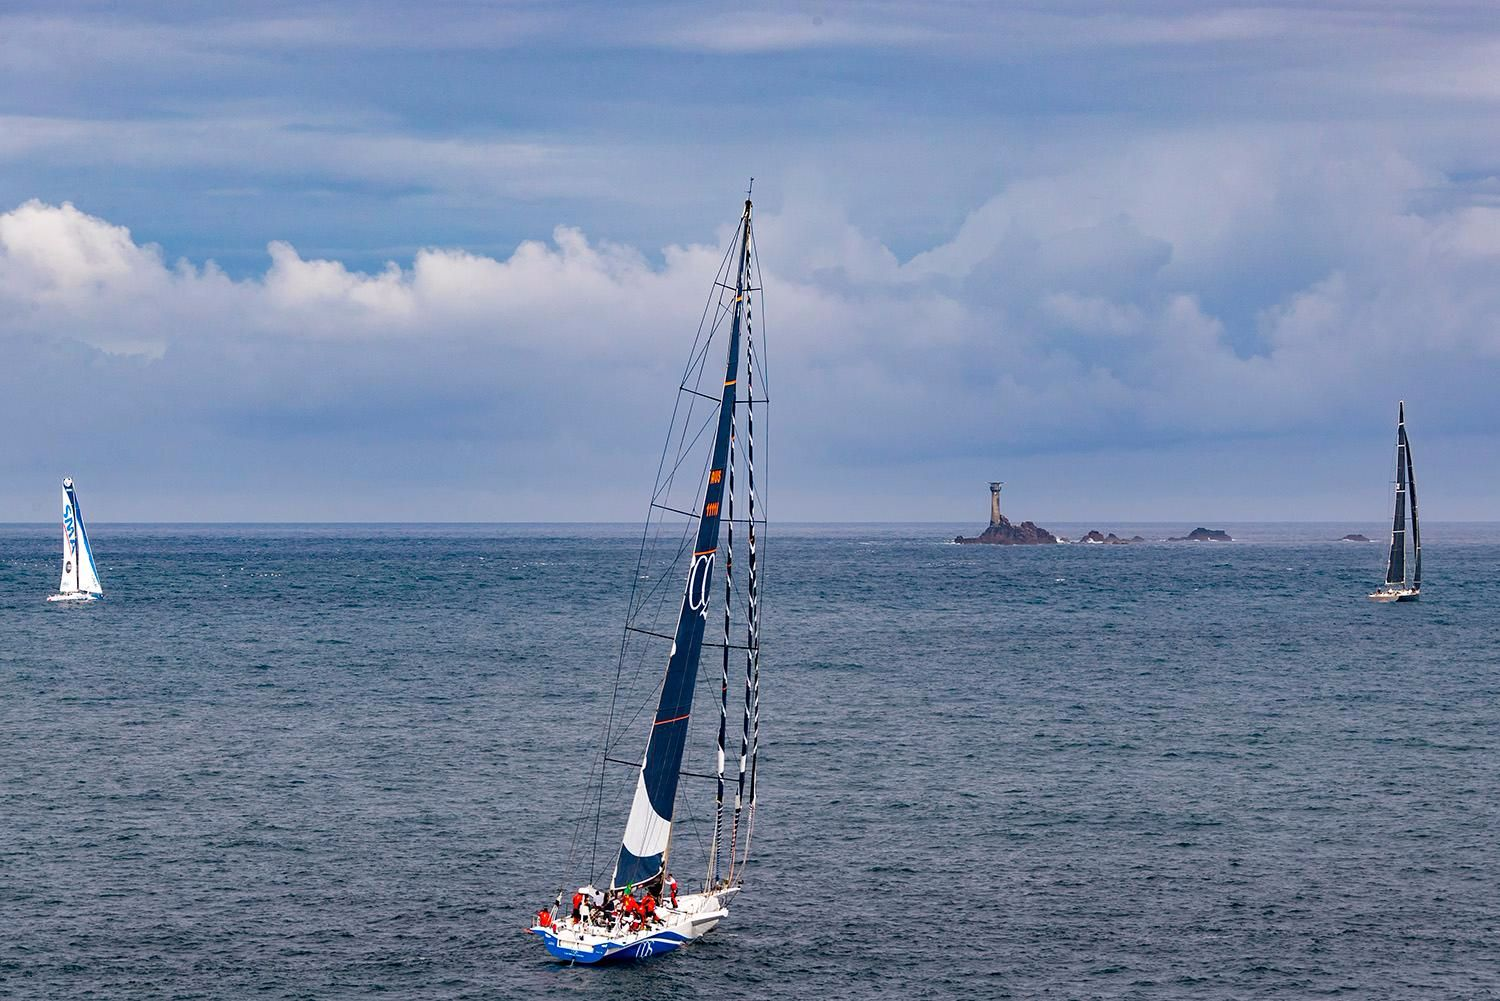 115ft Nikata and 100ft CQS proceed to the iconic Fastnet Rock. Credit: ROLEX/Carlo Borlenghi